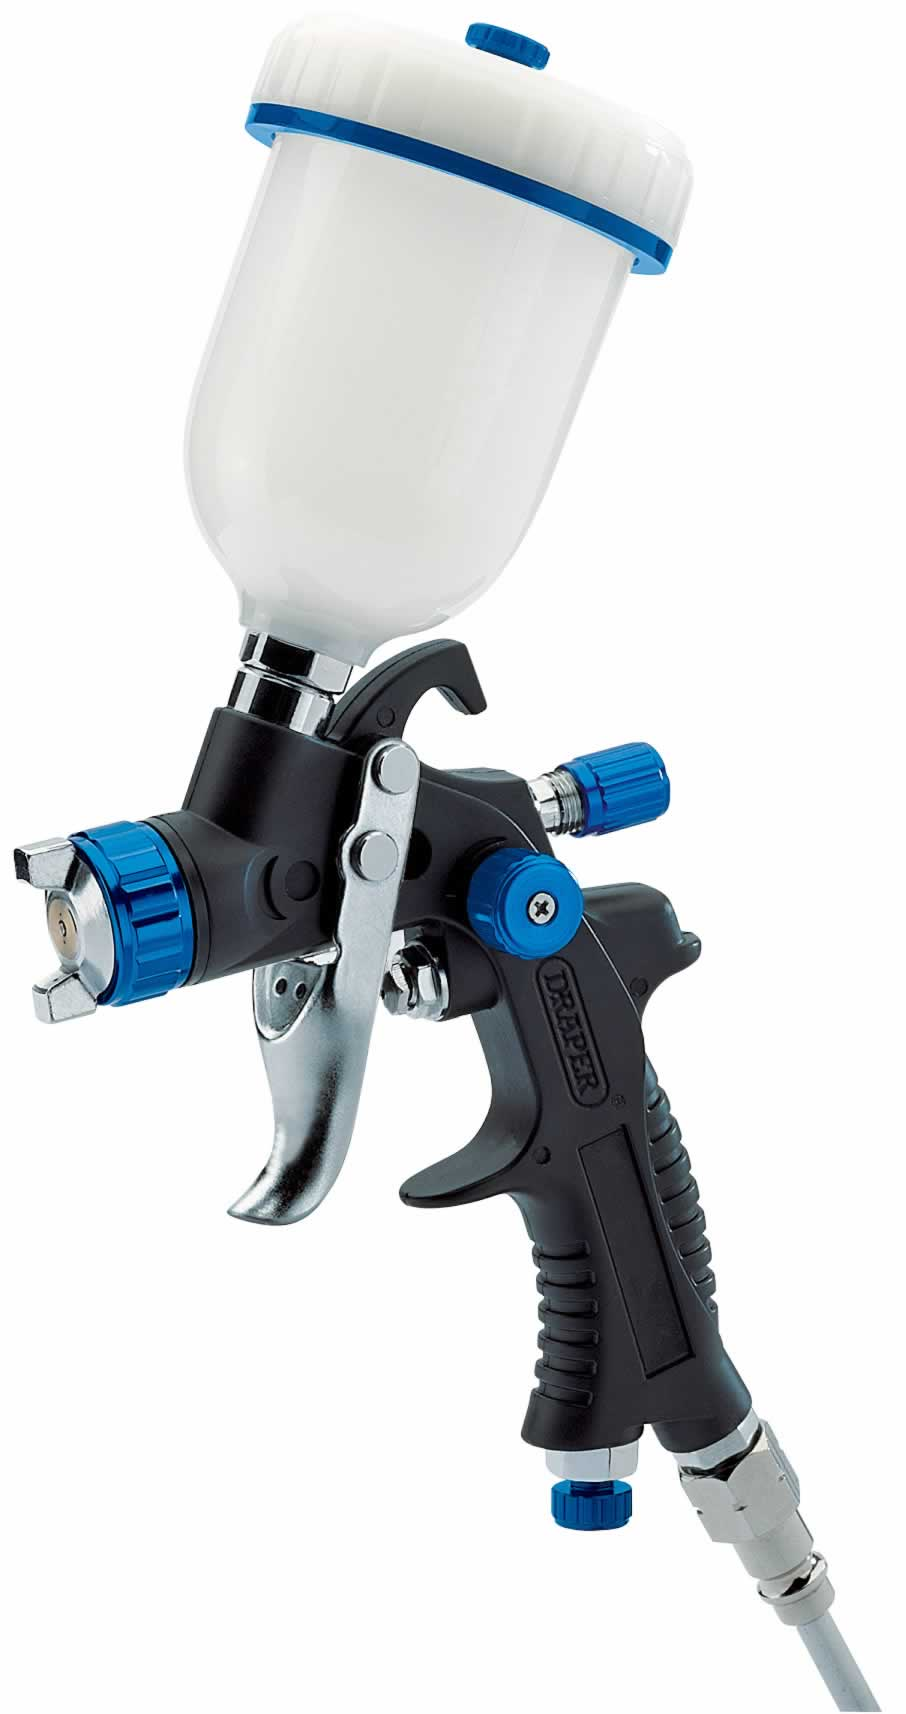 100ml GRAVITY FEED HVLP COMPSITE BODY AIR SPRAY GUN